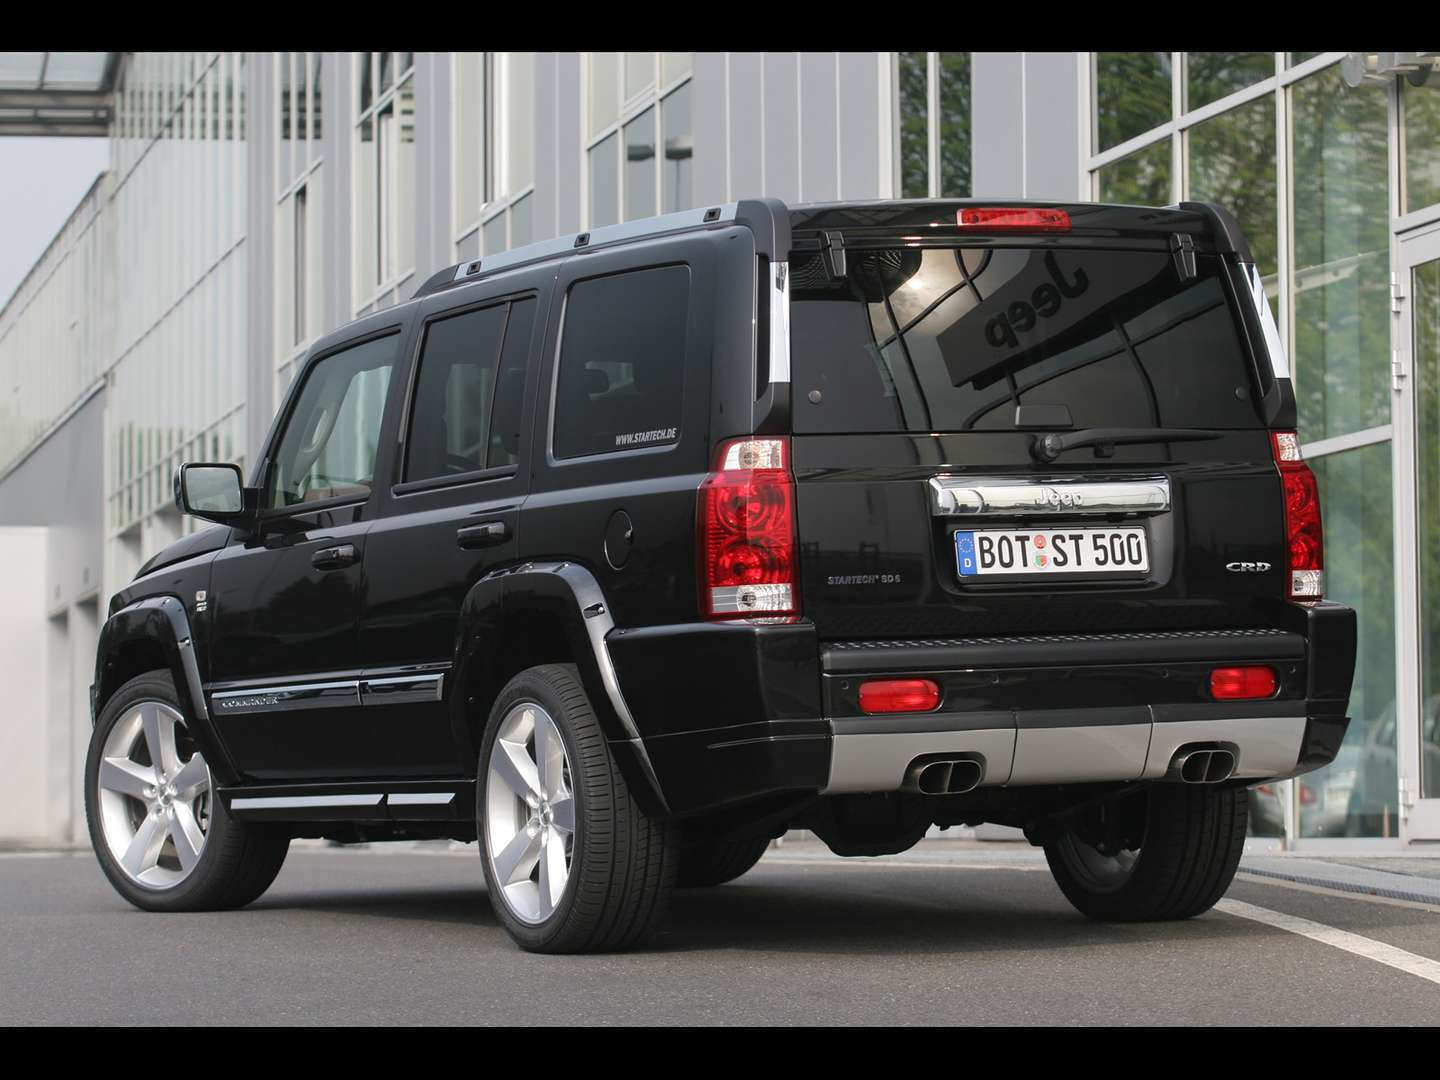 Jeep Commander #9375824